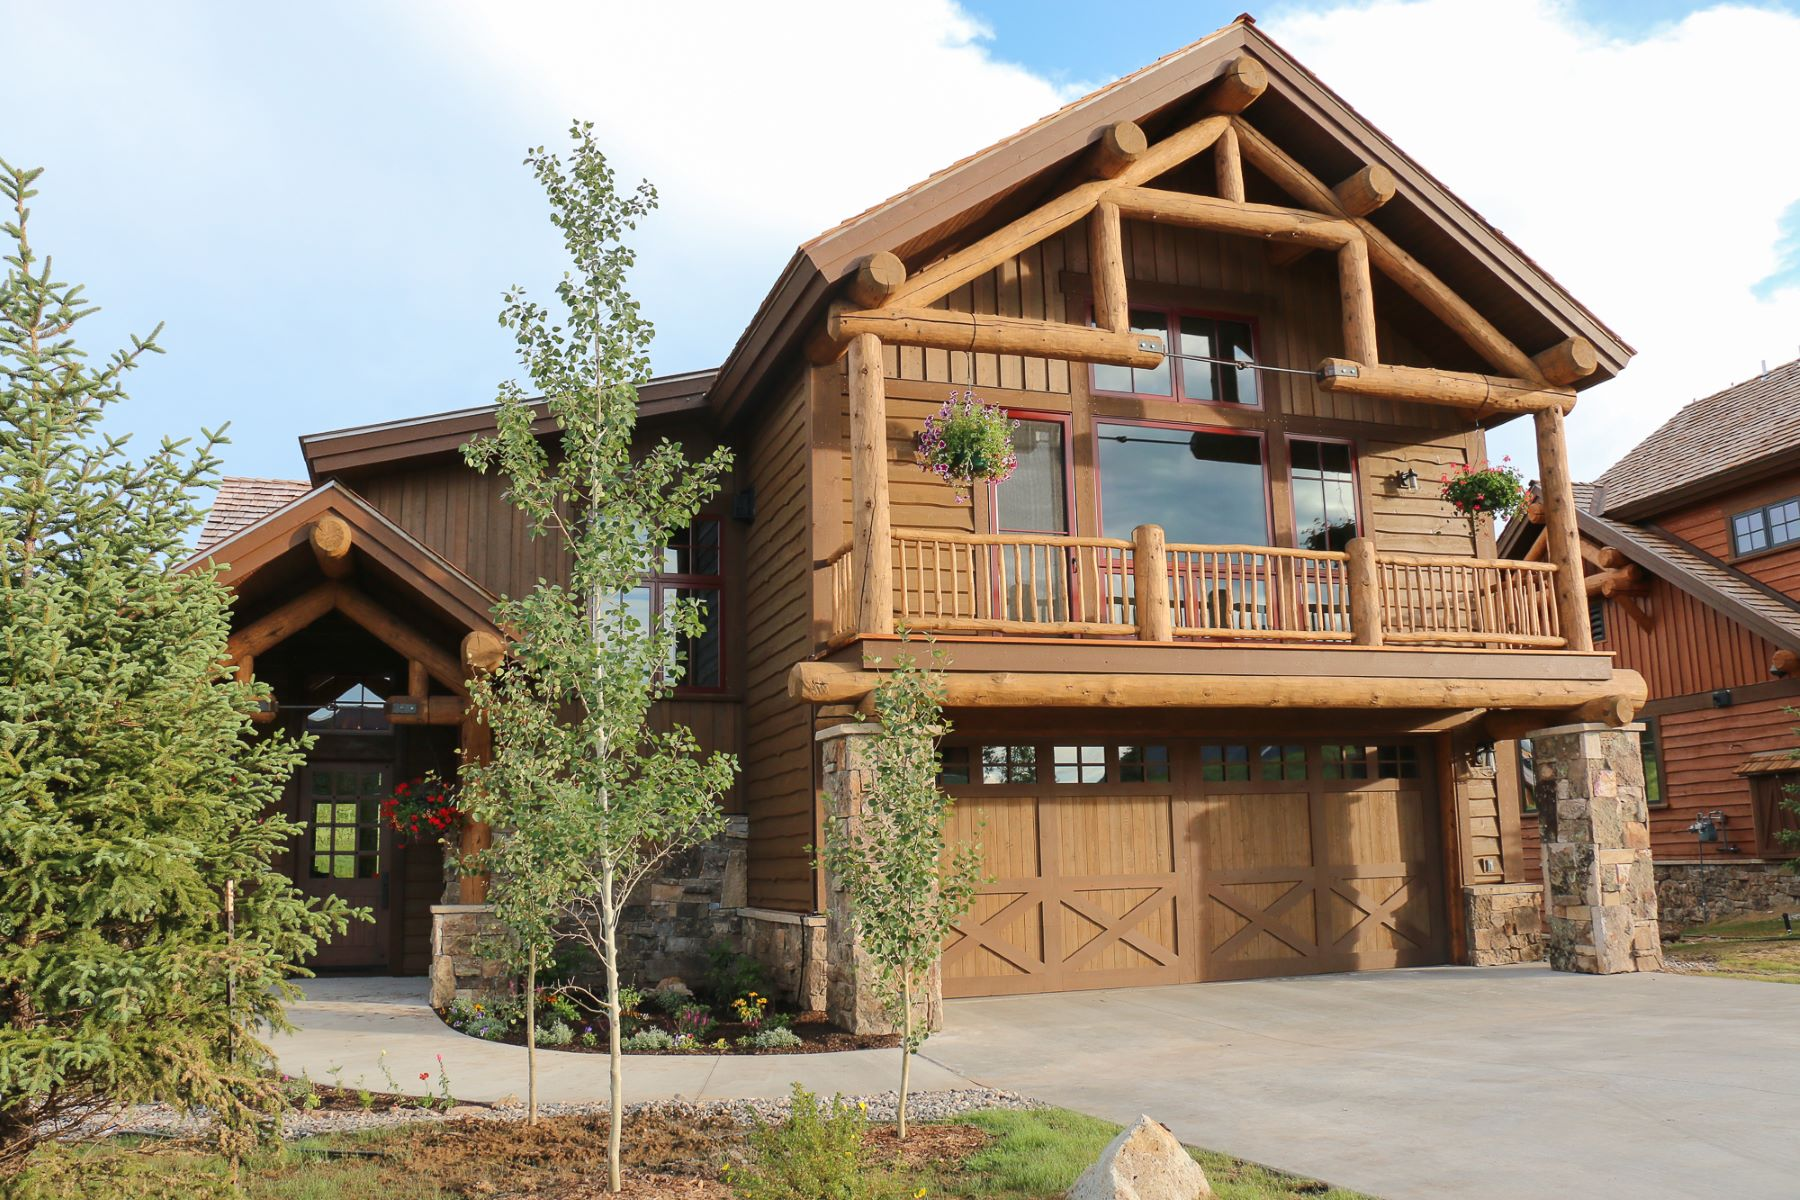 Single Family Homes for Sale at Wildhorse at Prospect New Construction 12 Appaloosa Road Mount Crested Butte, Colorado 81225 United States